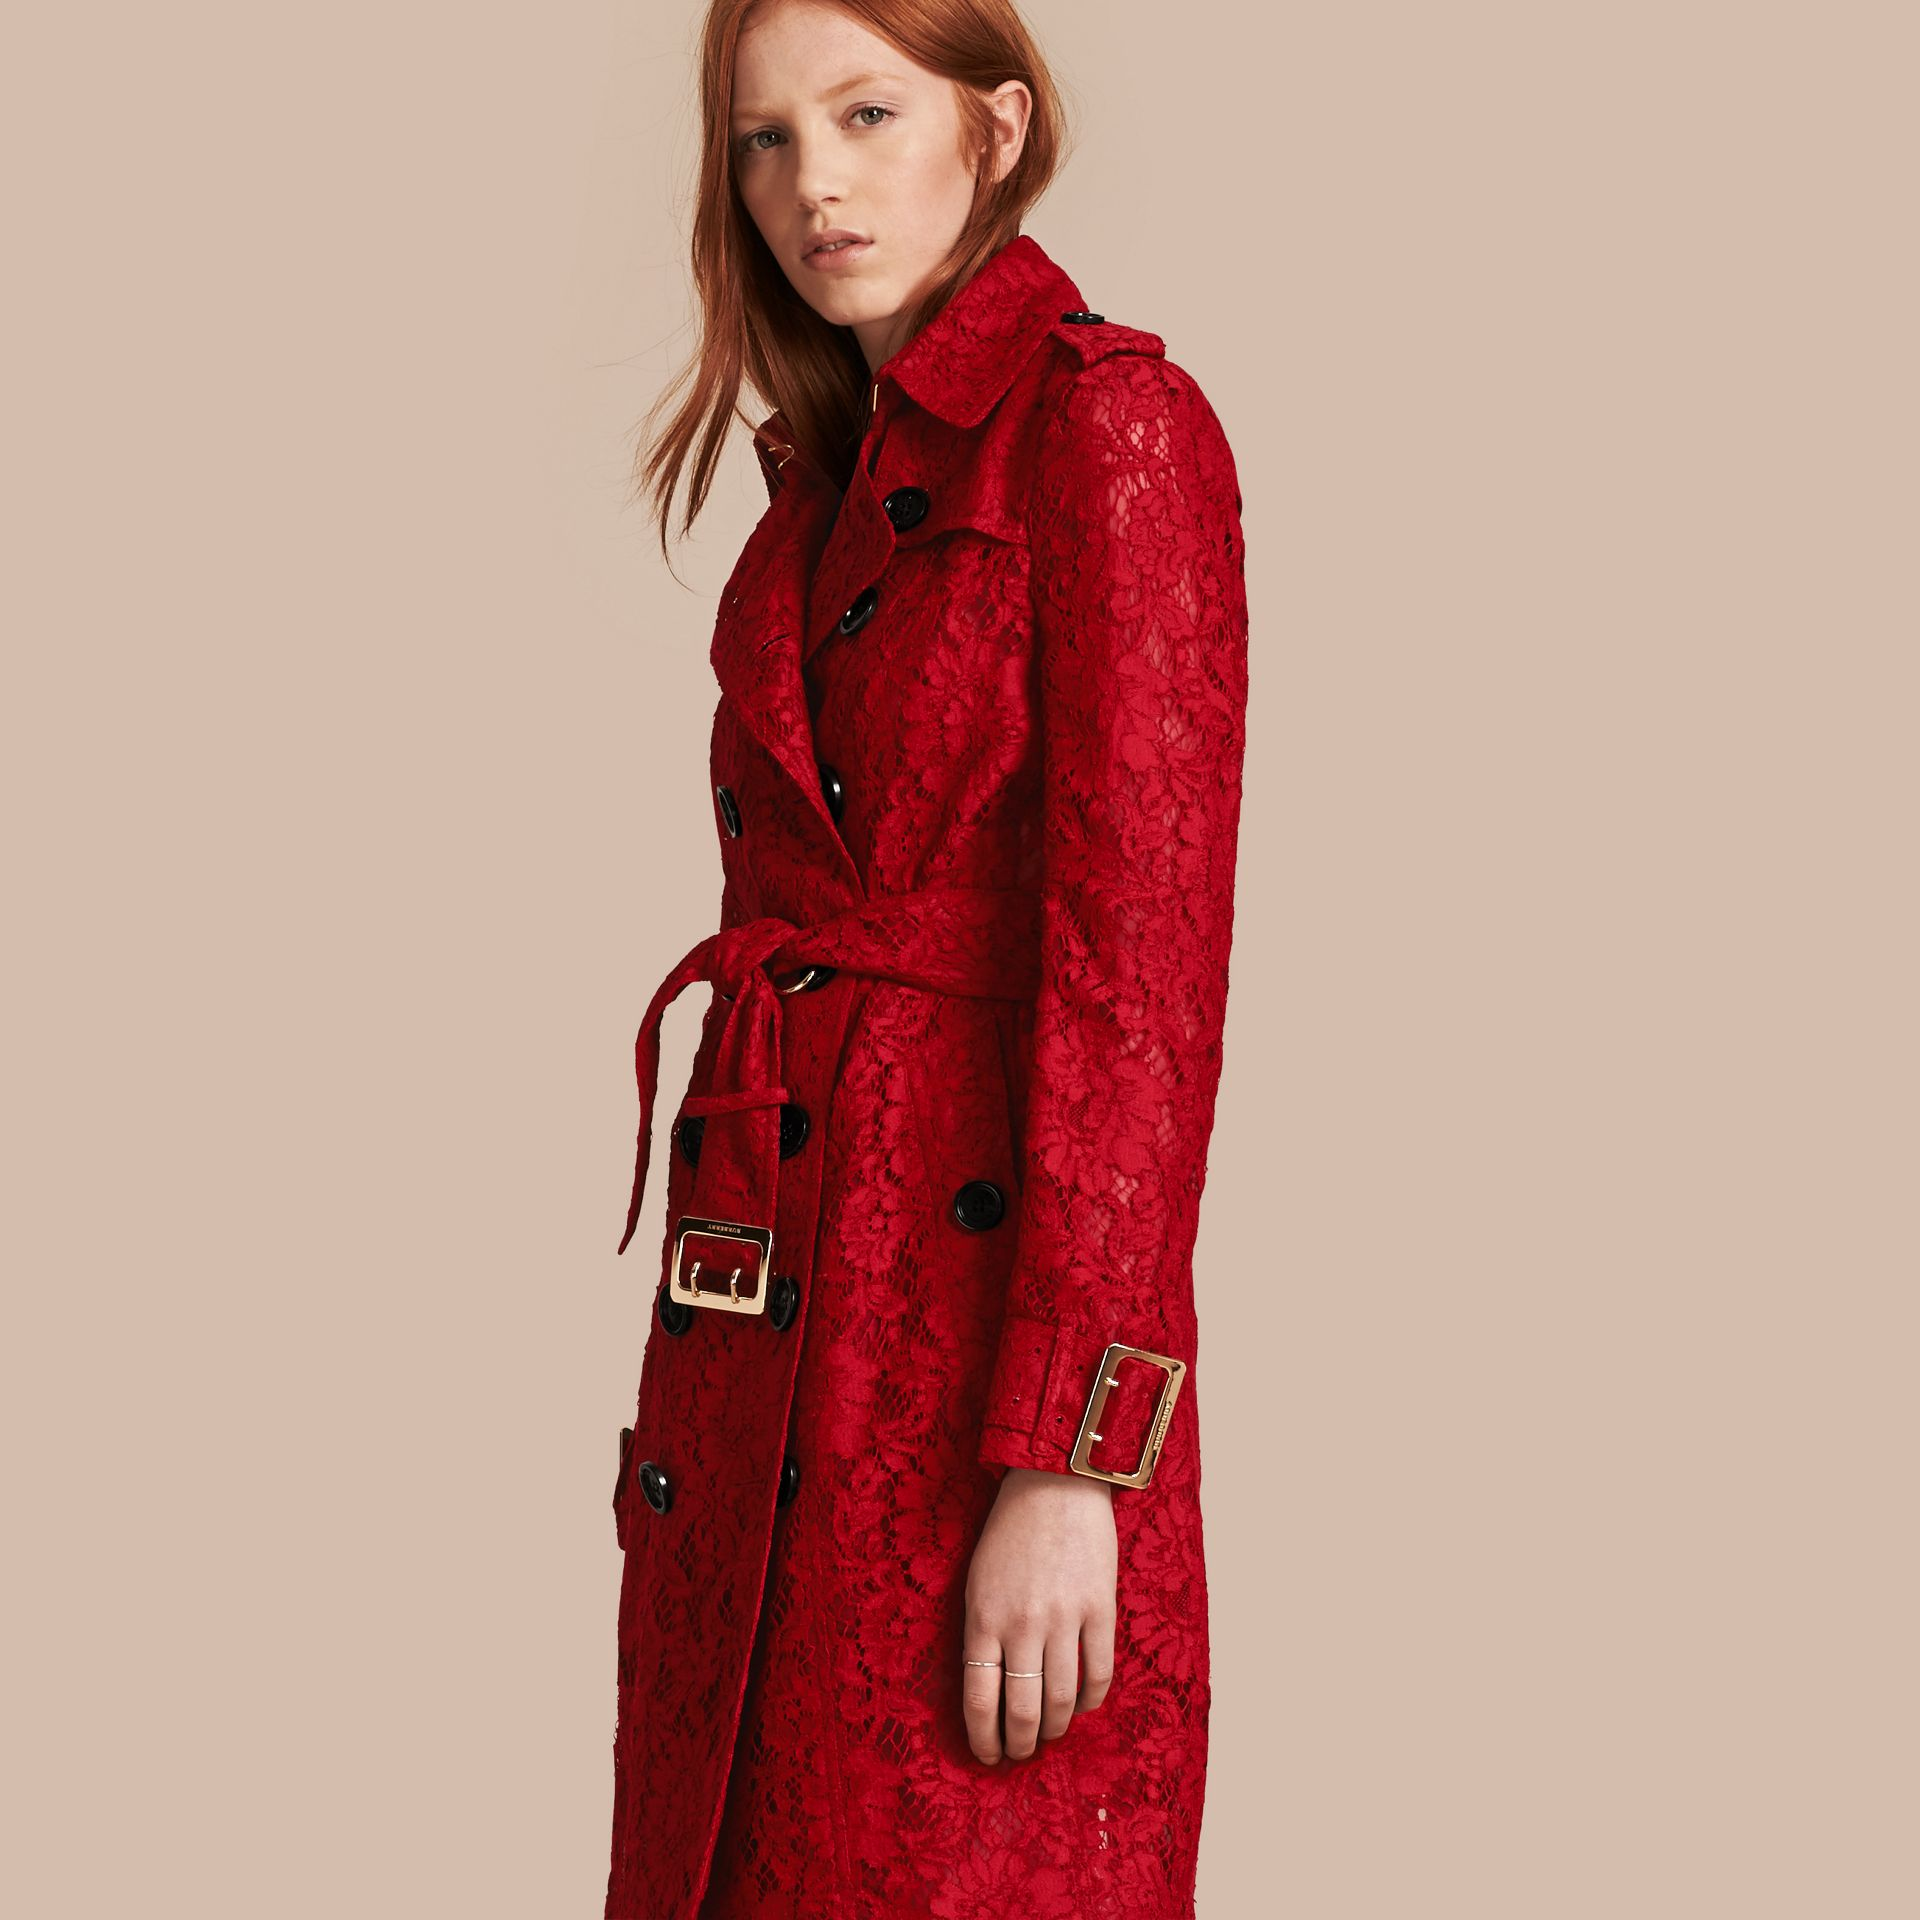 Parade red Lace Trench Coat - gallery image 1